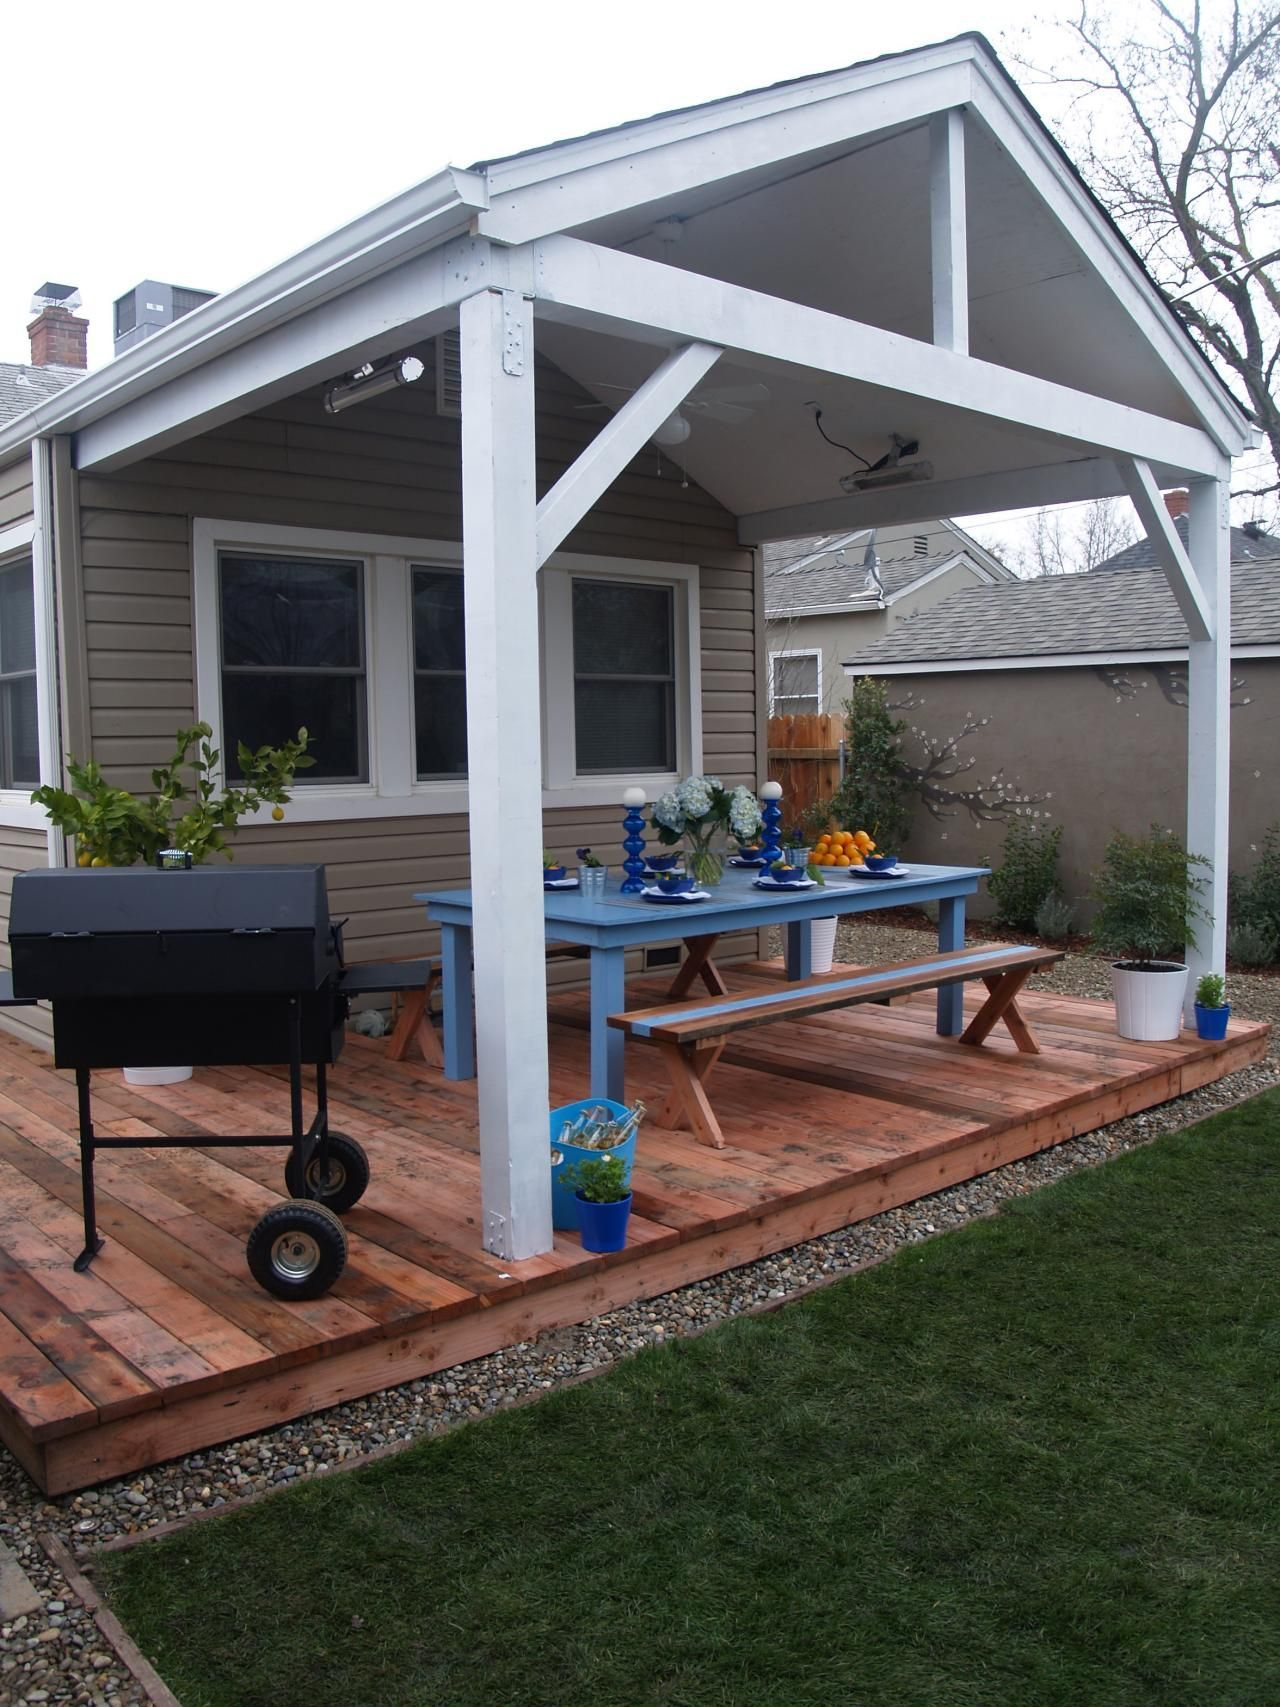 21 Totally Difference Patio Deck Designs You Should Try Patio Design Patio Deck Designs Diy Patio